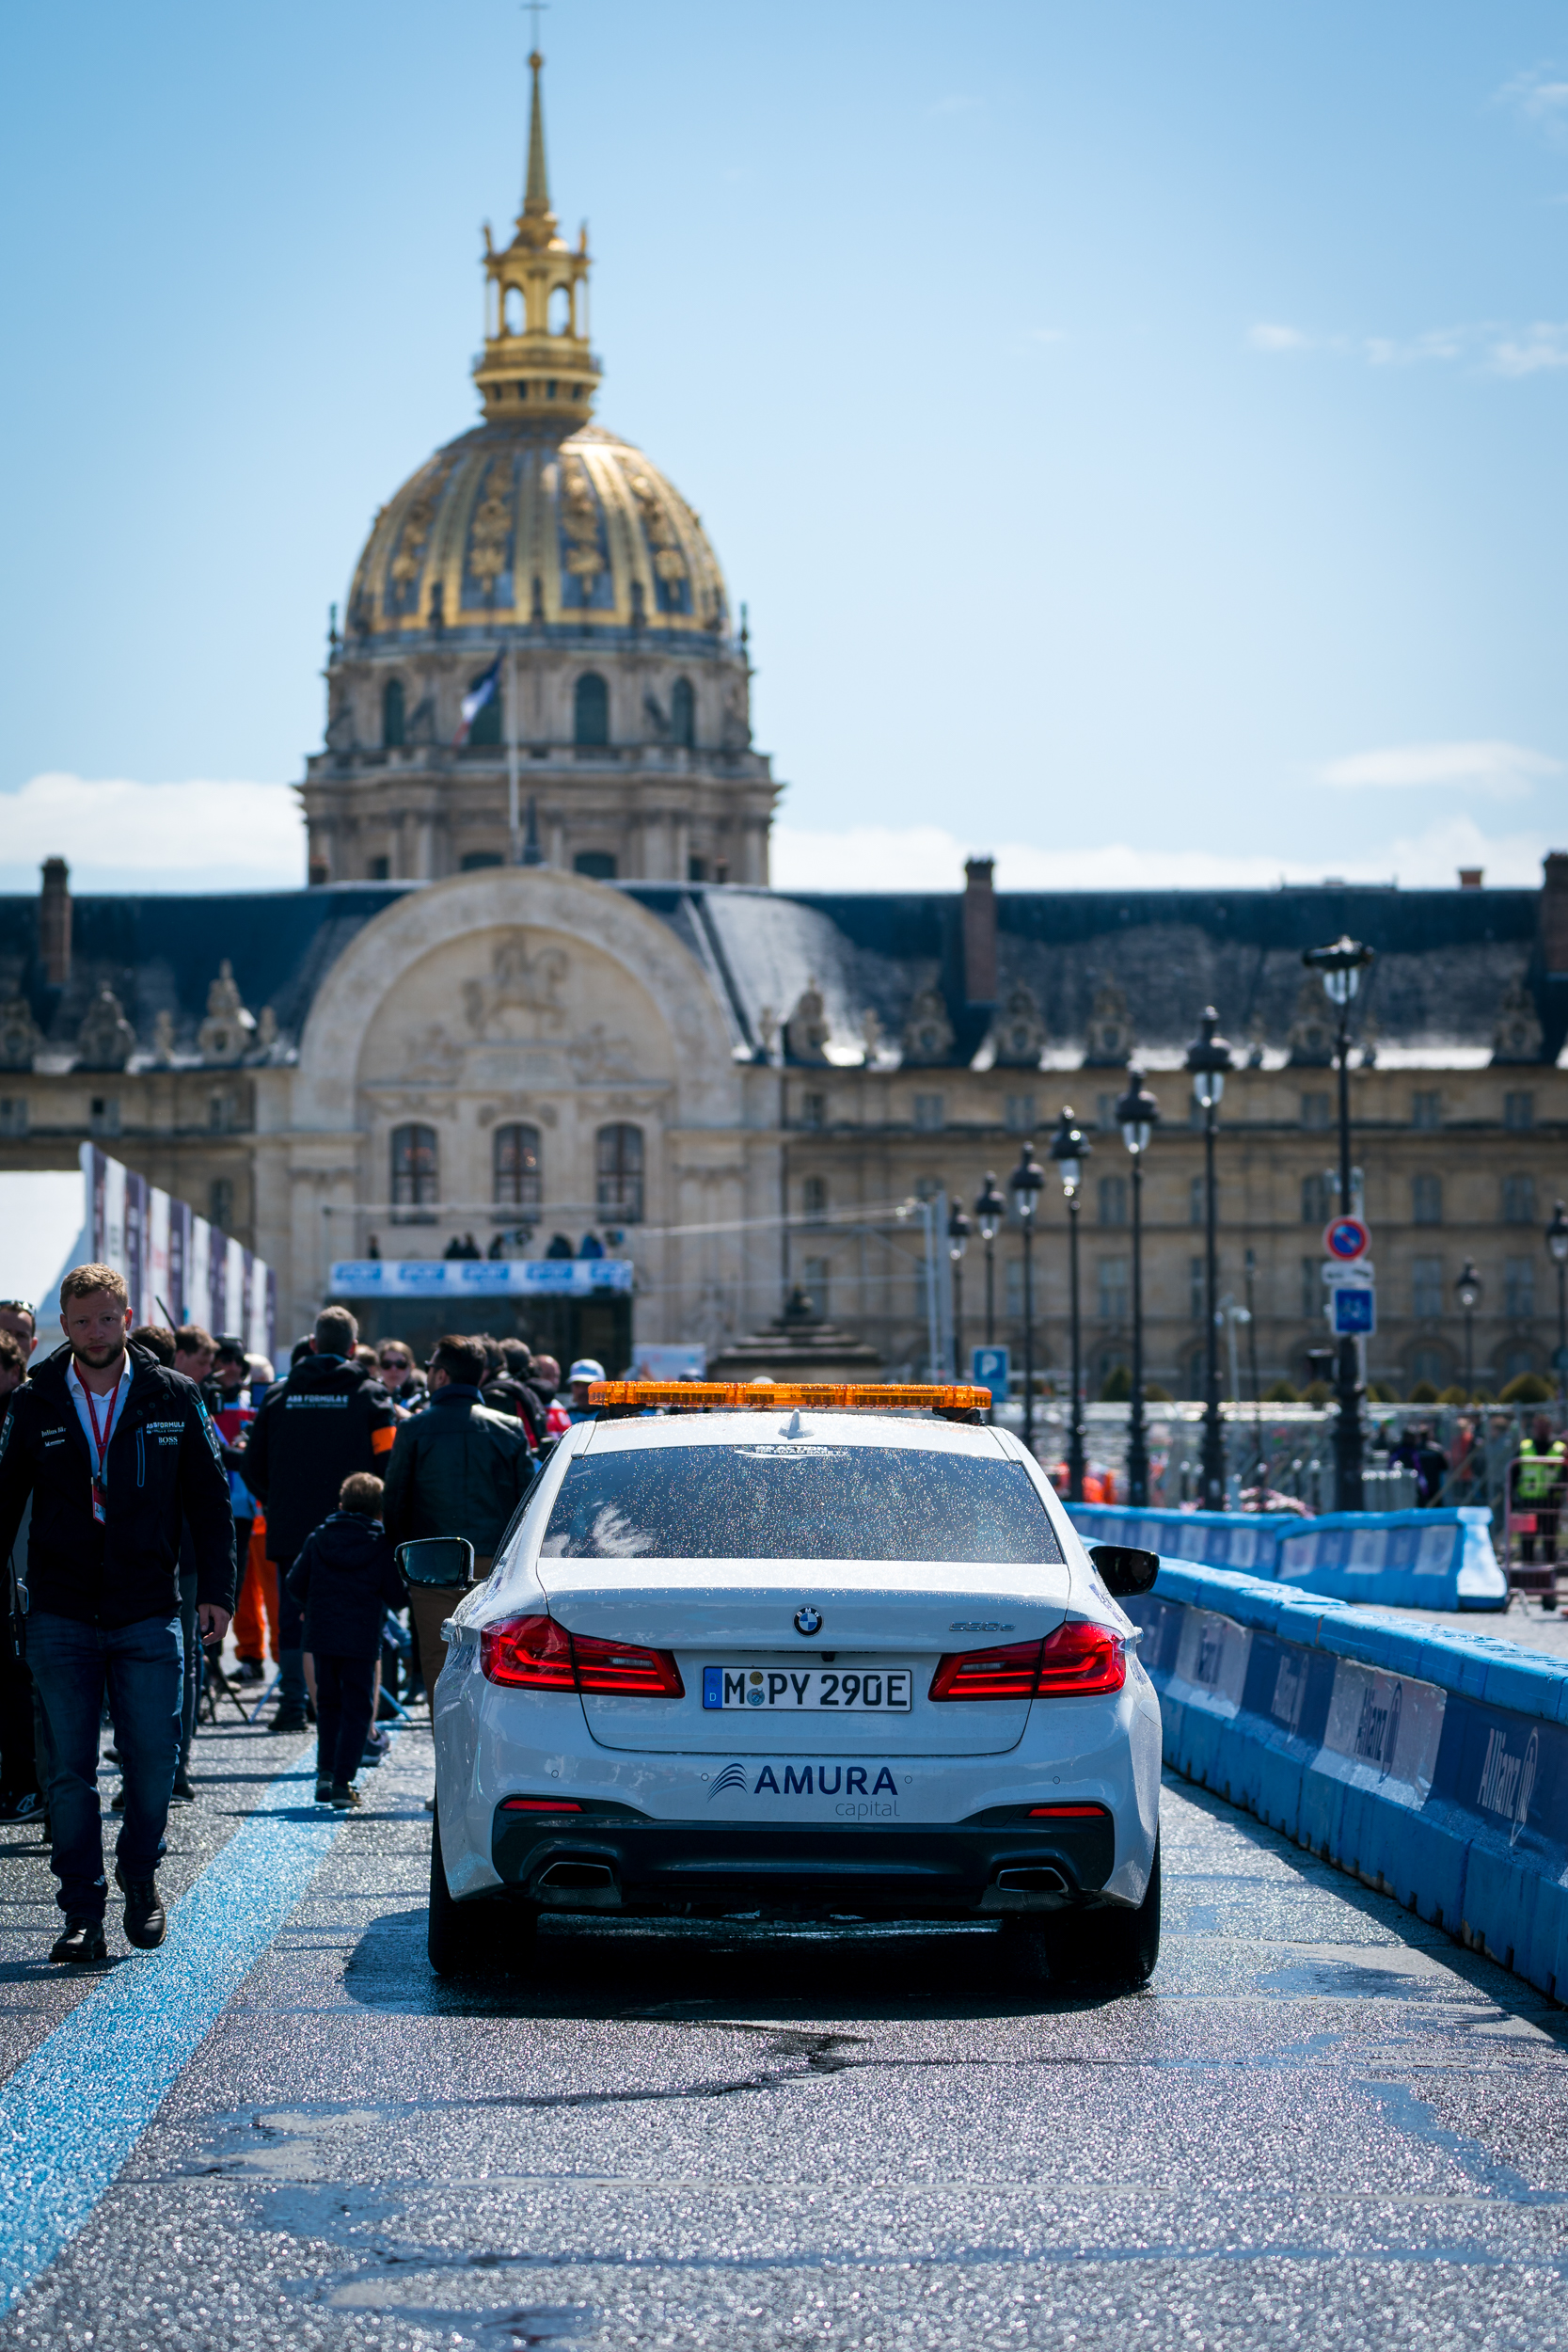 BMW i_Formula E Paris 2019_26&27-04-19_Florian Leger_SHARE & DARE_HD_N°-324.jpg